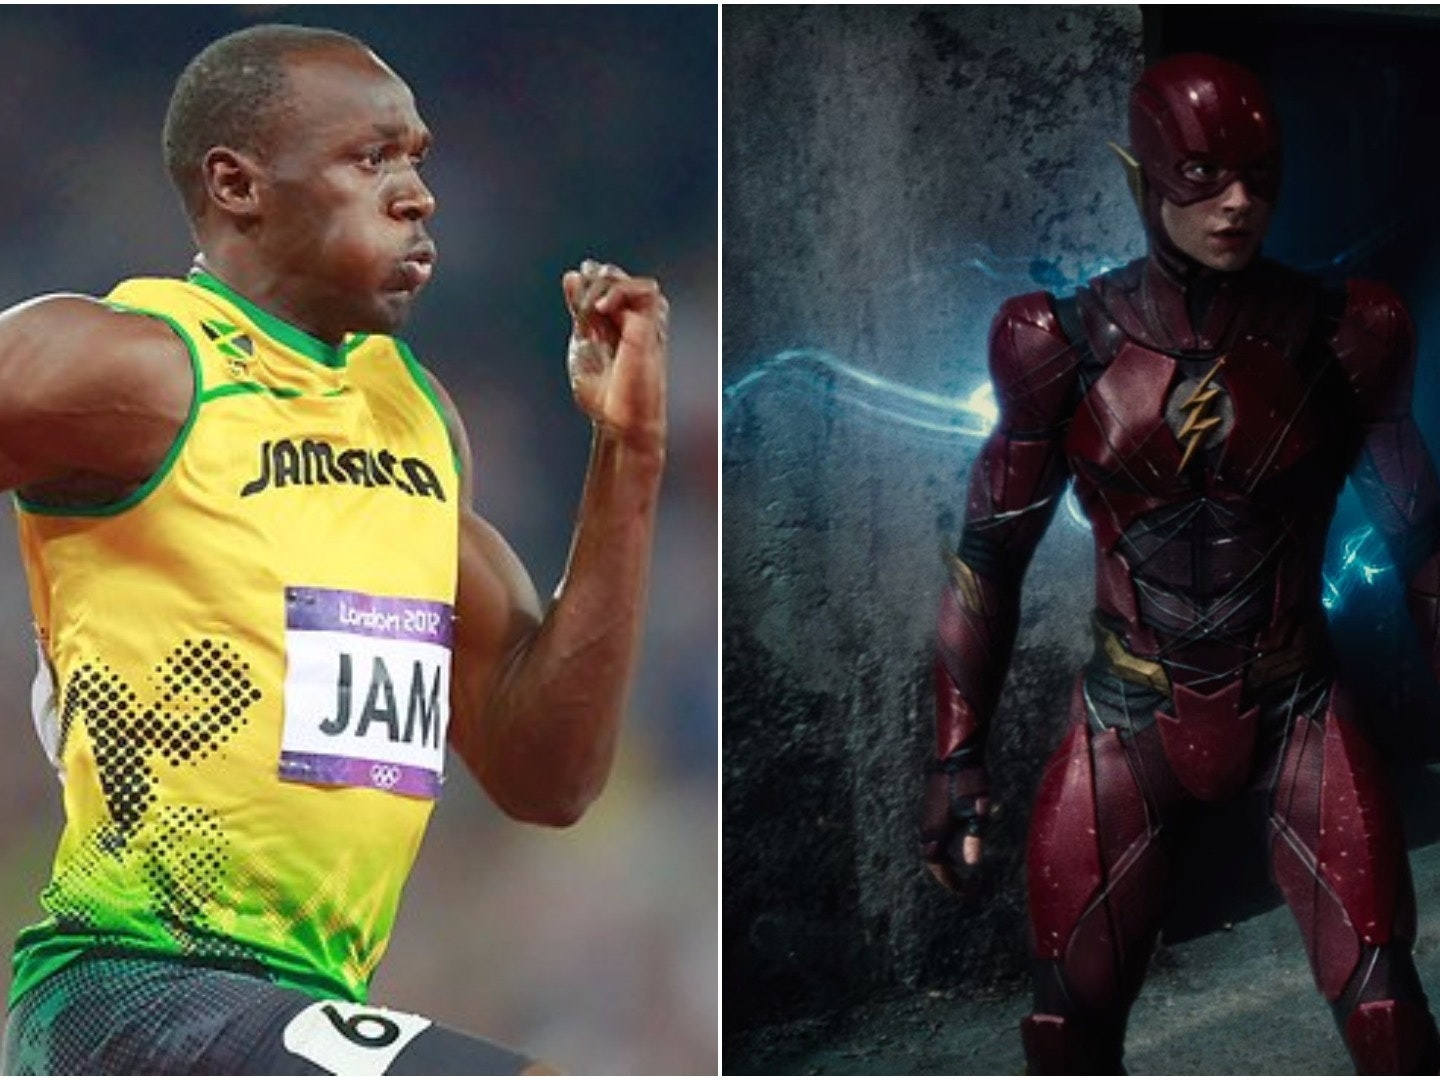 Ezra Miller as The Flash and Usain Bolt